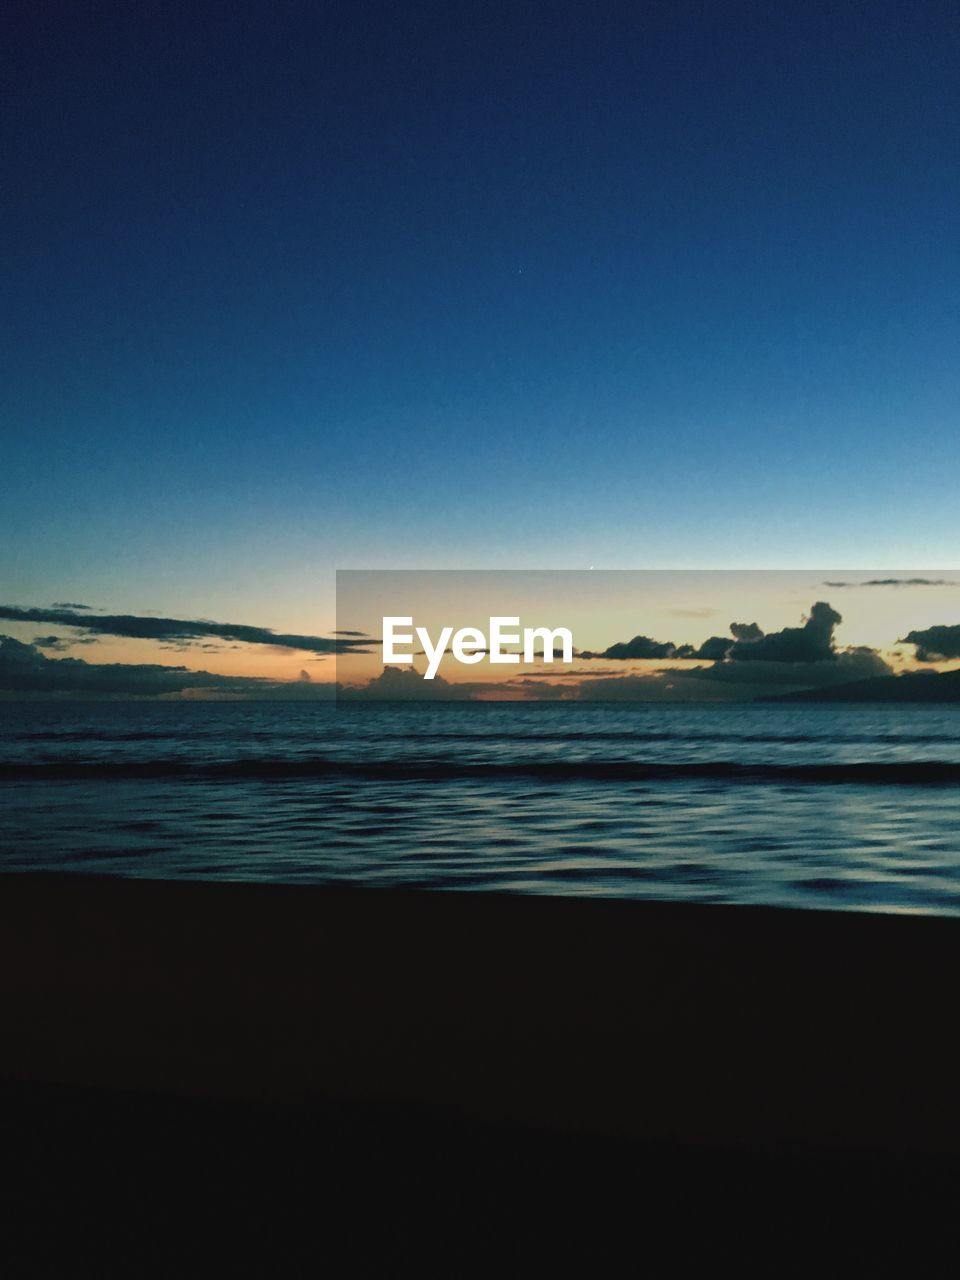 sky, scenics - nature, beauty in nature, tranquility, water, sea, tranquil scene, copy space, land, beach, clear sky, no people, nature, blue, idyllic, outdoors, non-urban scene, sunset, horizon